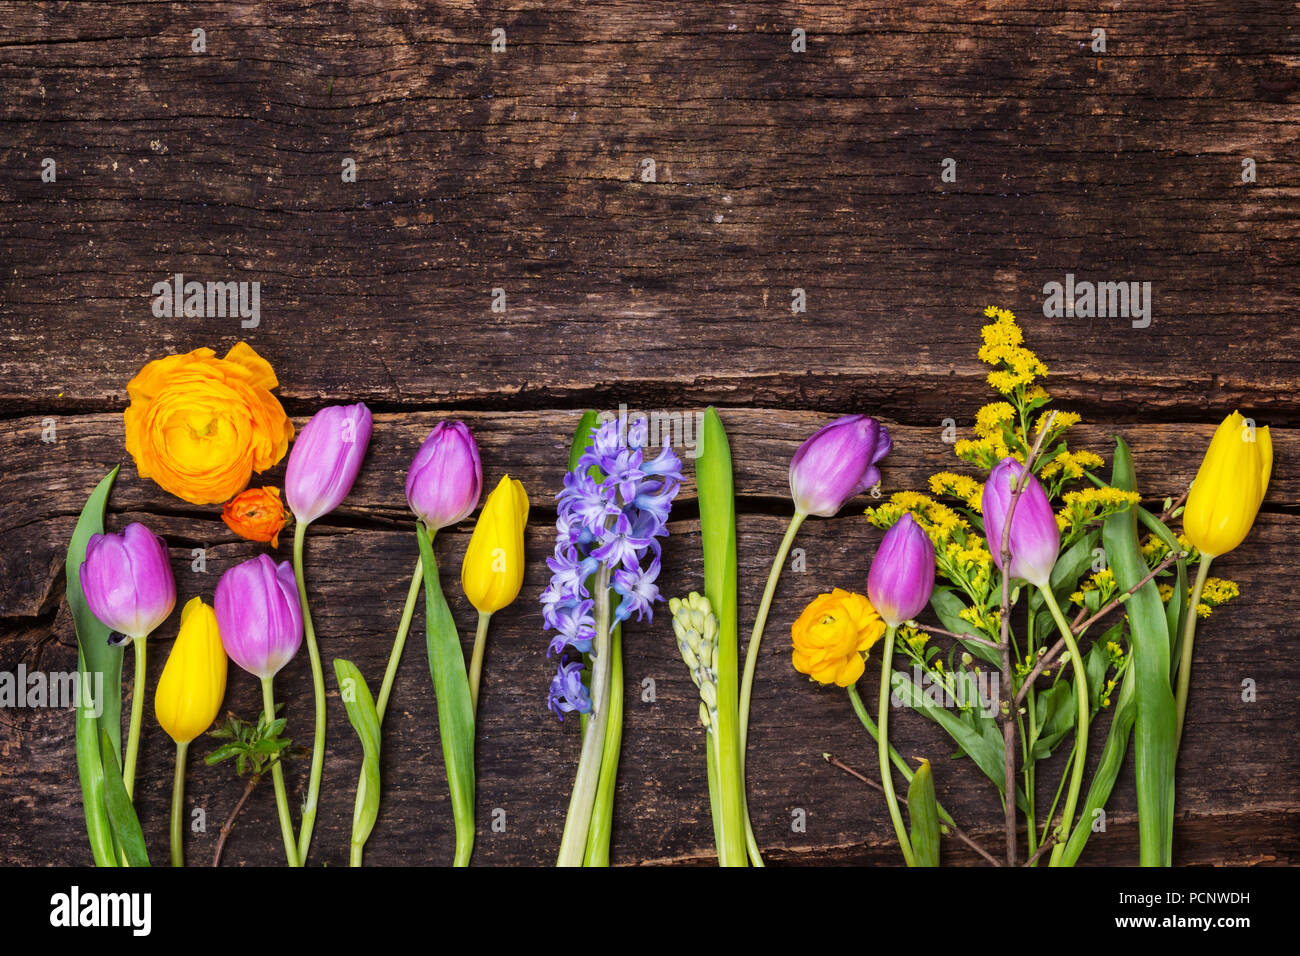 Colorful Spring Flowers On Wood Stock Photo 214381261 Alamy